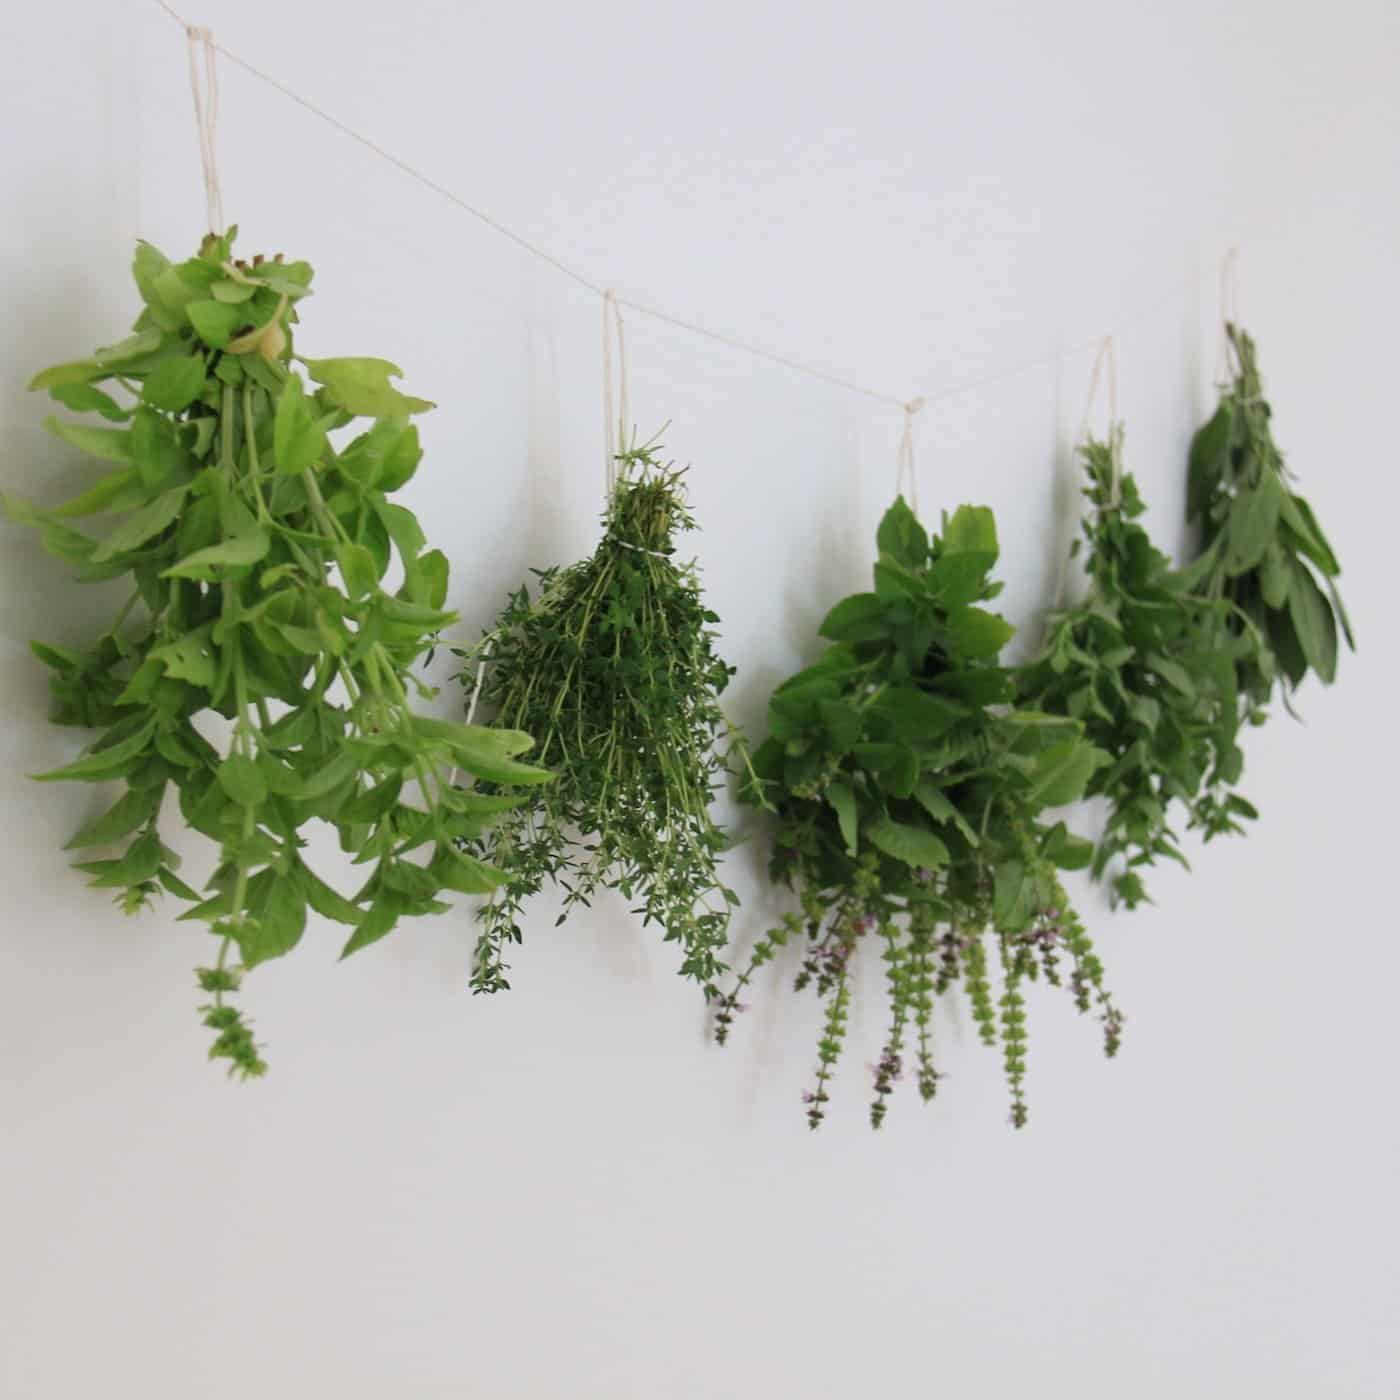 Hanging herb plants drying against a white wall